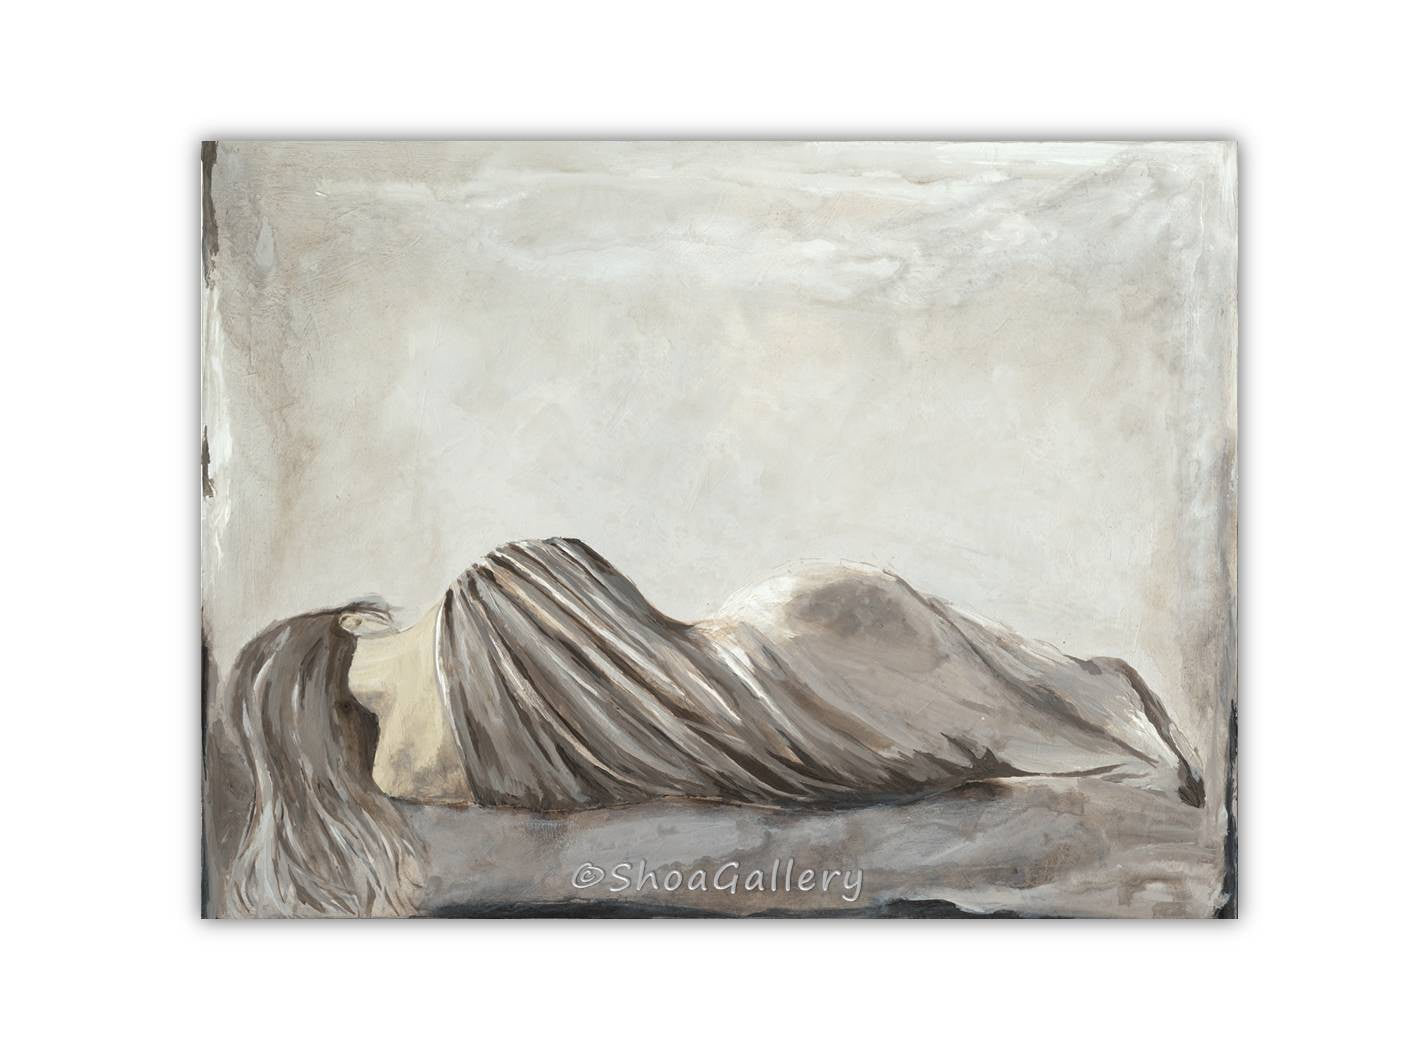 ORIGINAL large acrylic painting greige artwork sexy woman figurative canvas art gray neutral taupe bedroom decor